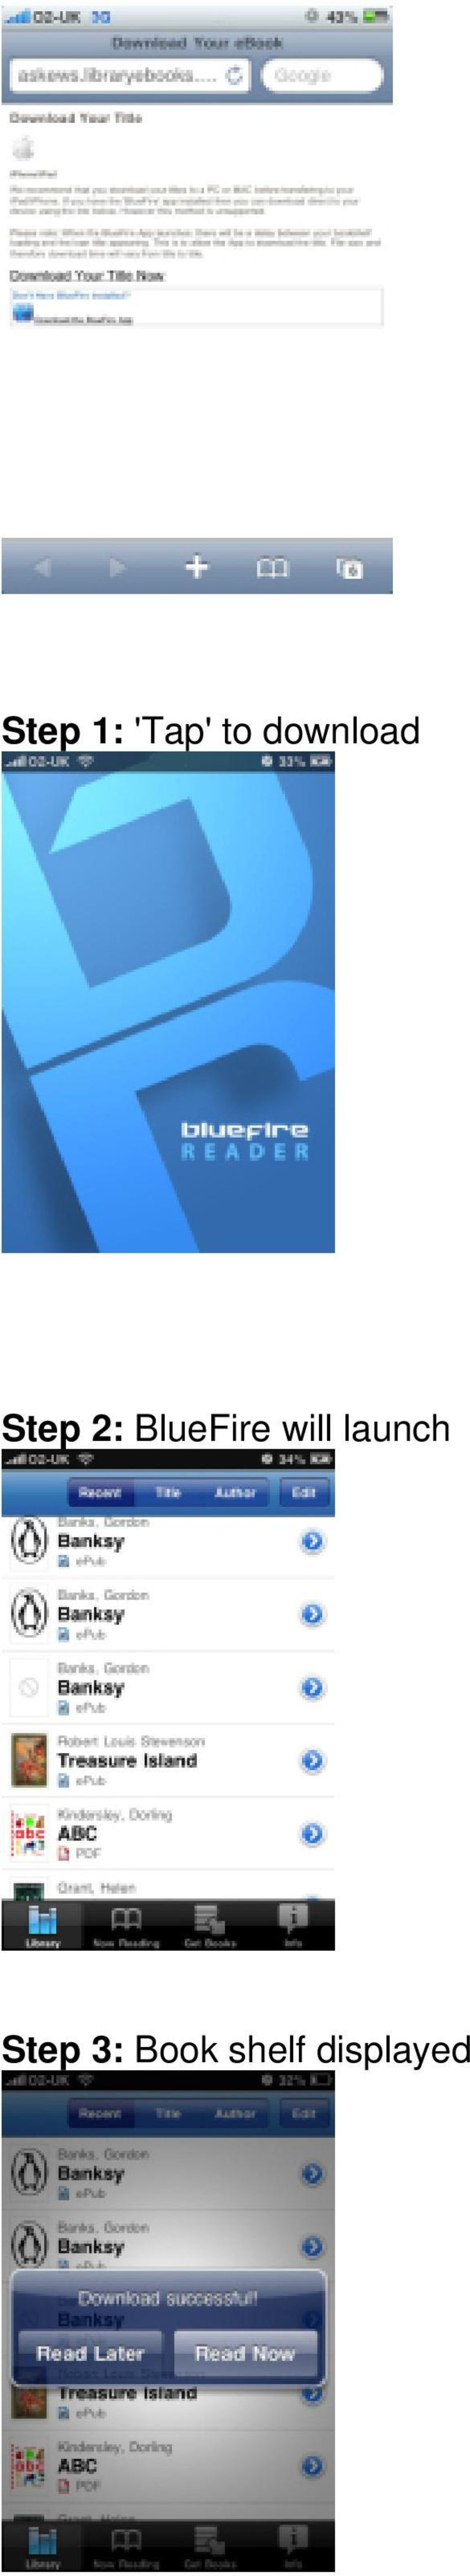 BlueFire will launch